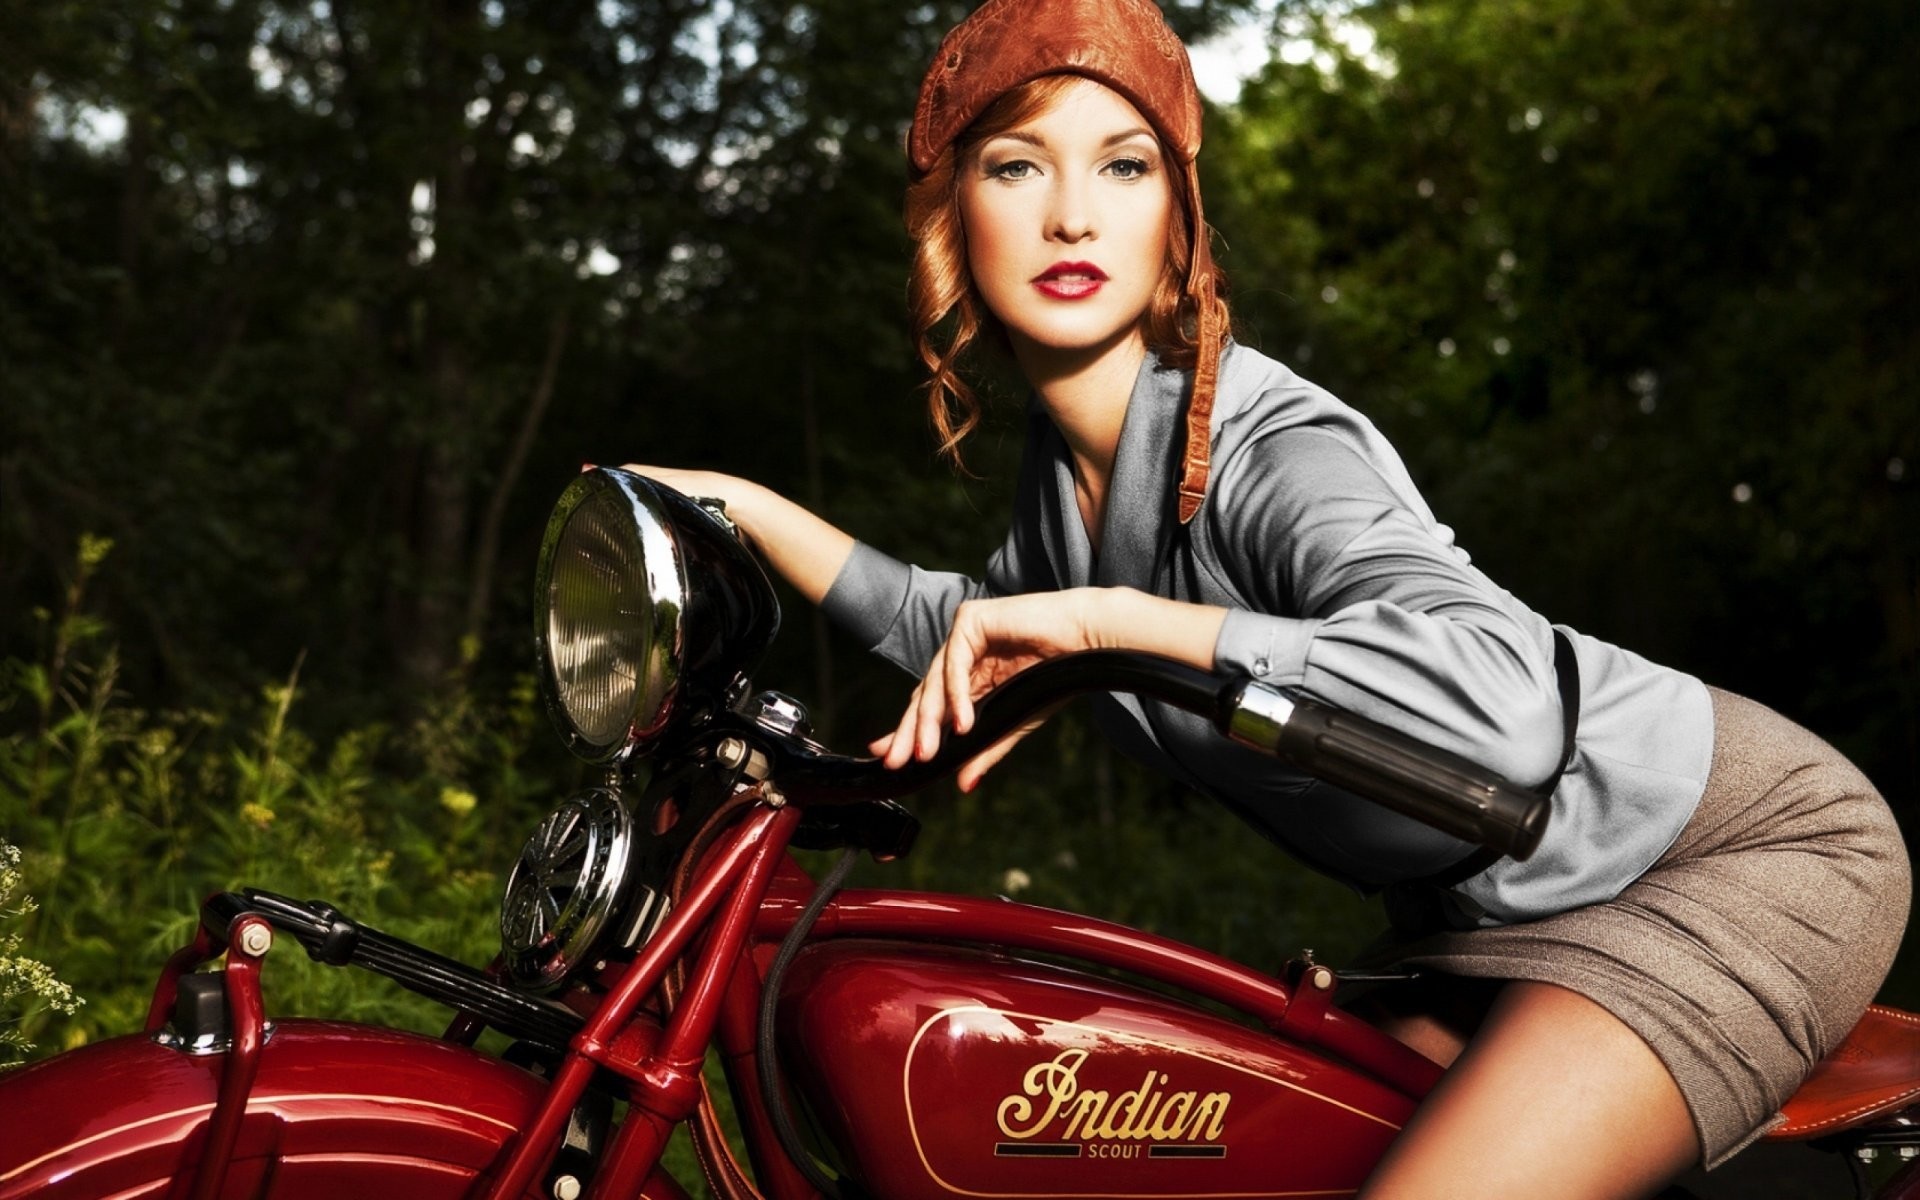 mood motorcycle beautiful girl to leather cap to motorcycle indian scout  scout model 1920 georgia was